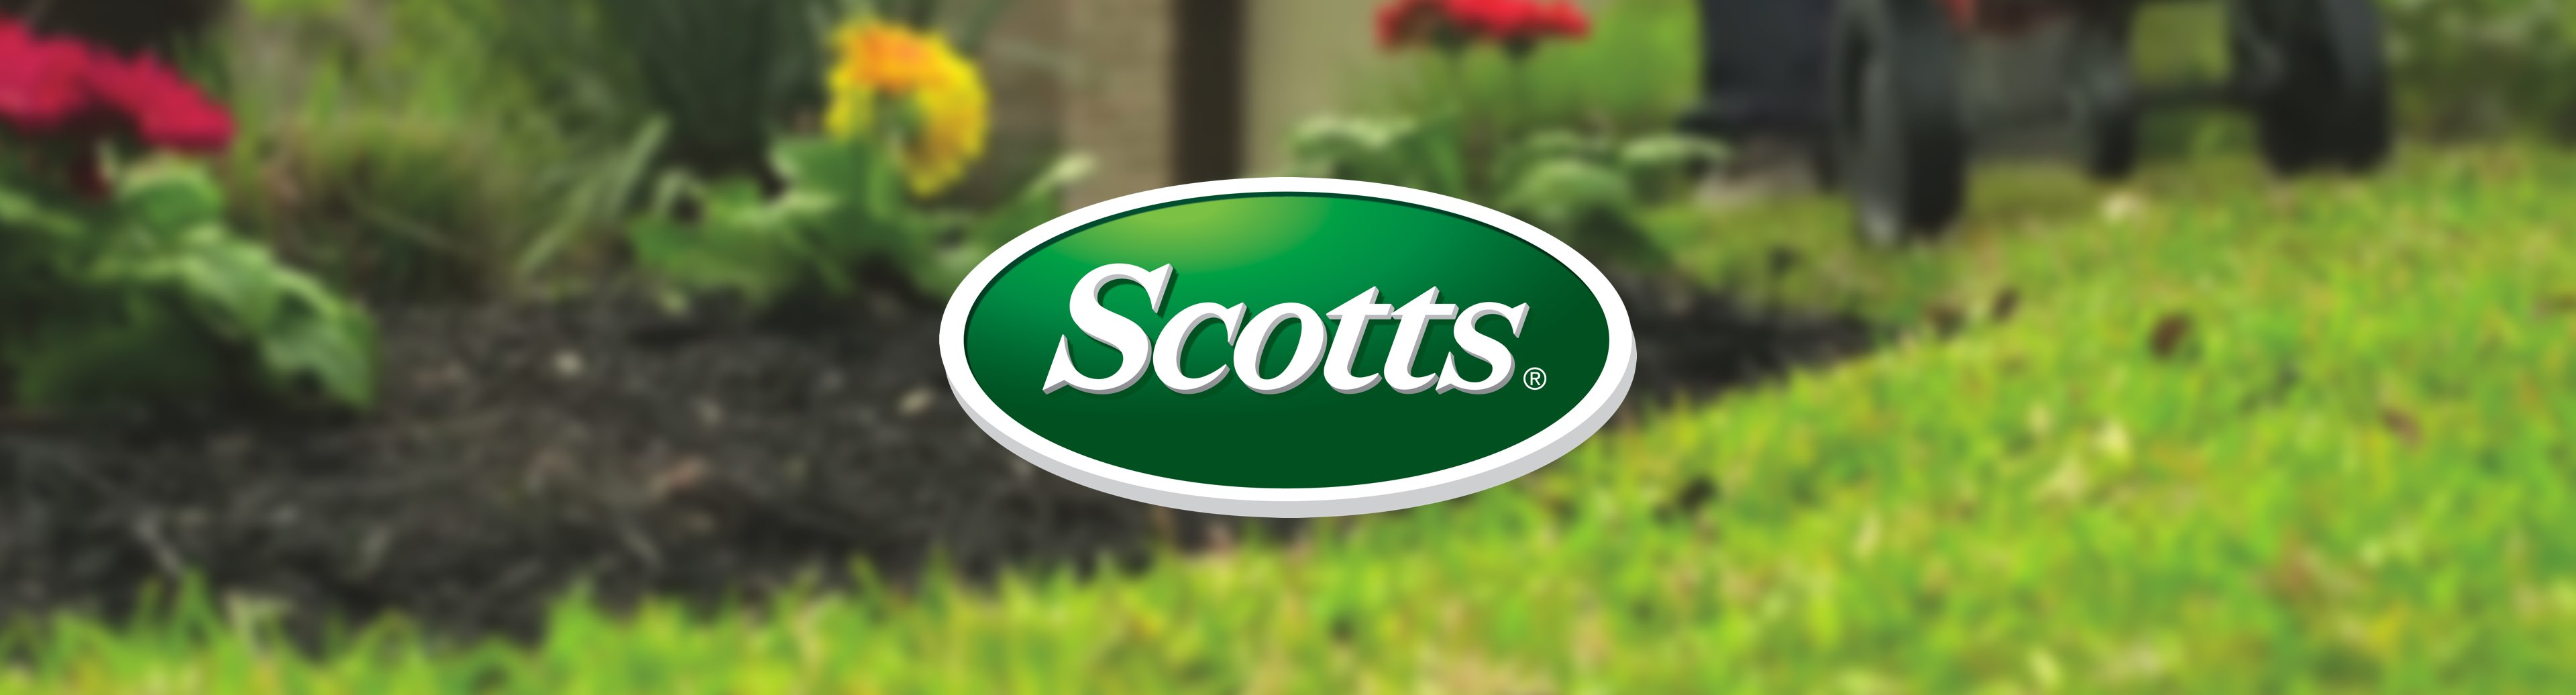 More about Scotts lawn care at Jantz Lumber